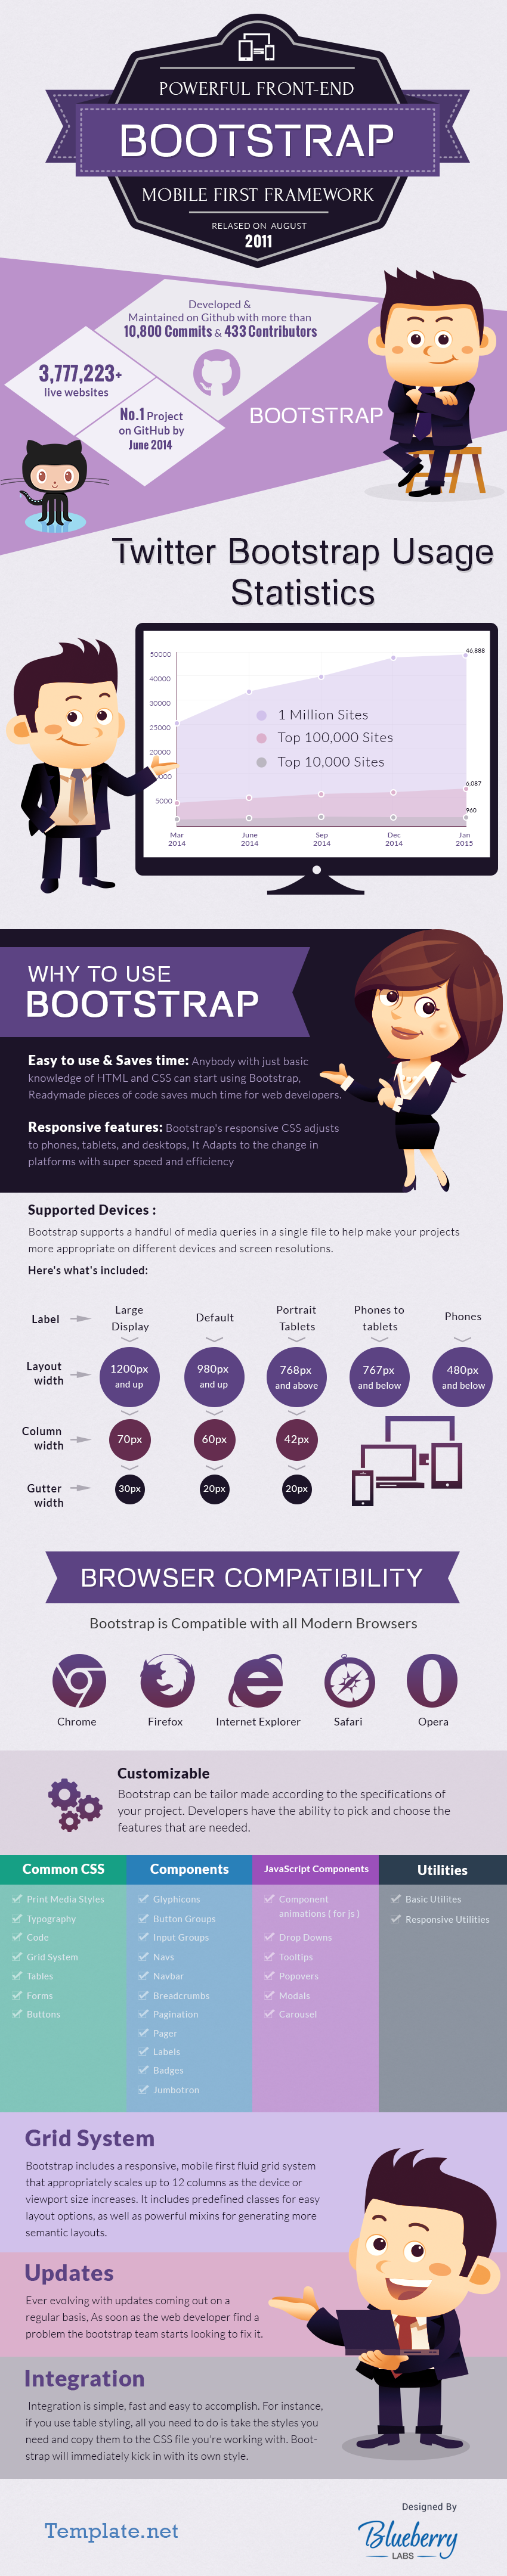 Infographics: Powerful Front End  Bootstrap Mobile First Framework